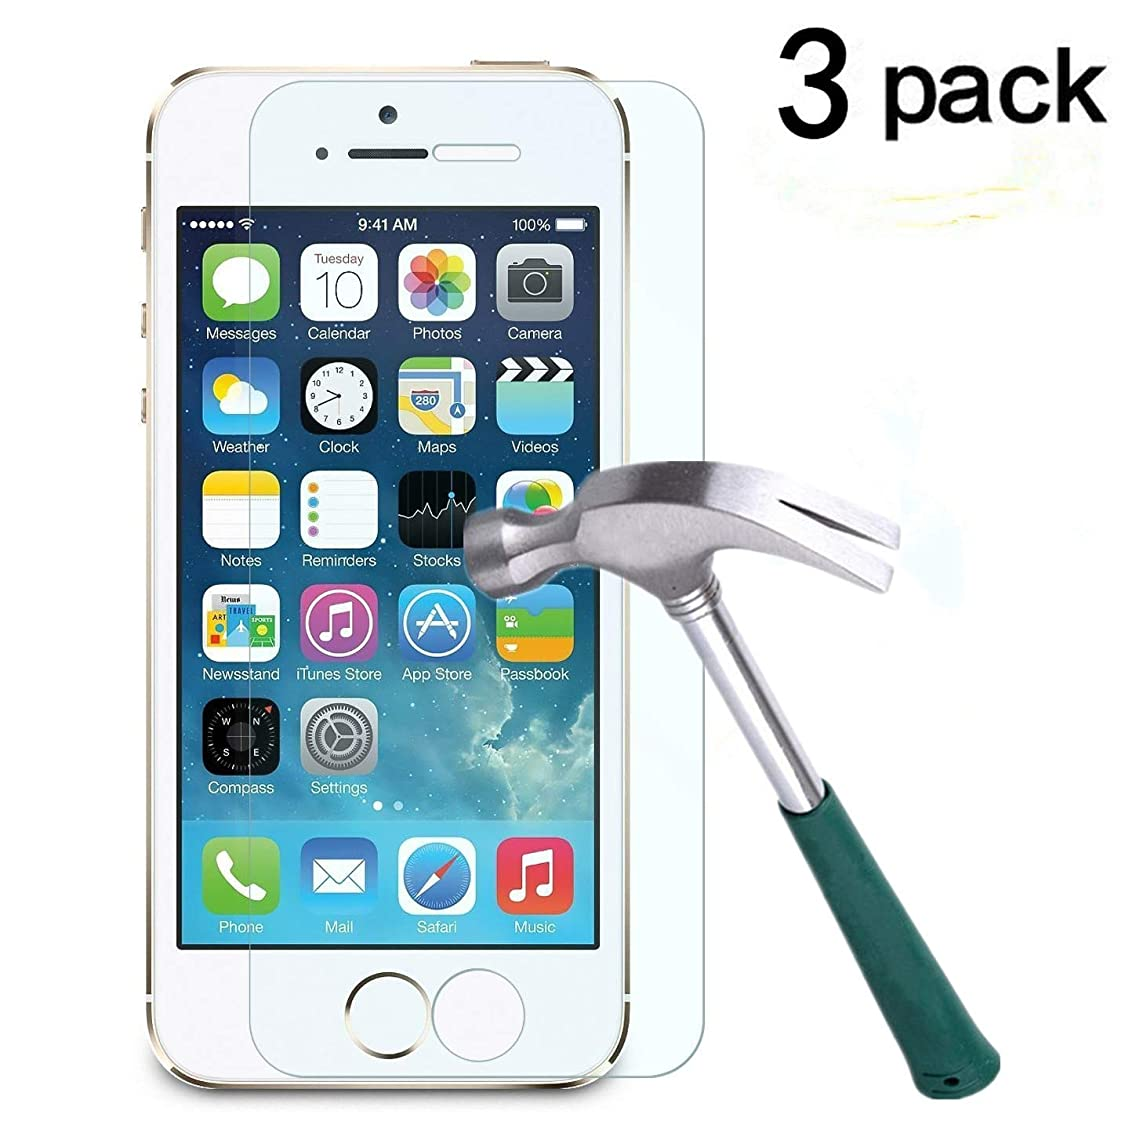 TANTEK LLL63 iPhone 5/5C/5S/SE Screen Protector, Anti-Bubble, HD Ultra Clear, Premium Tempered Glass - 3 Piece